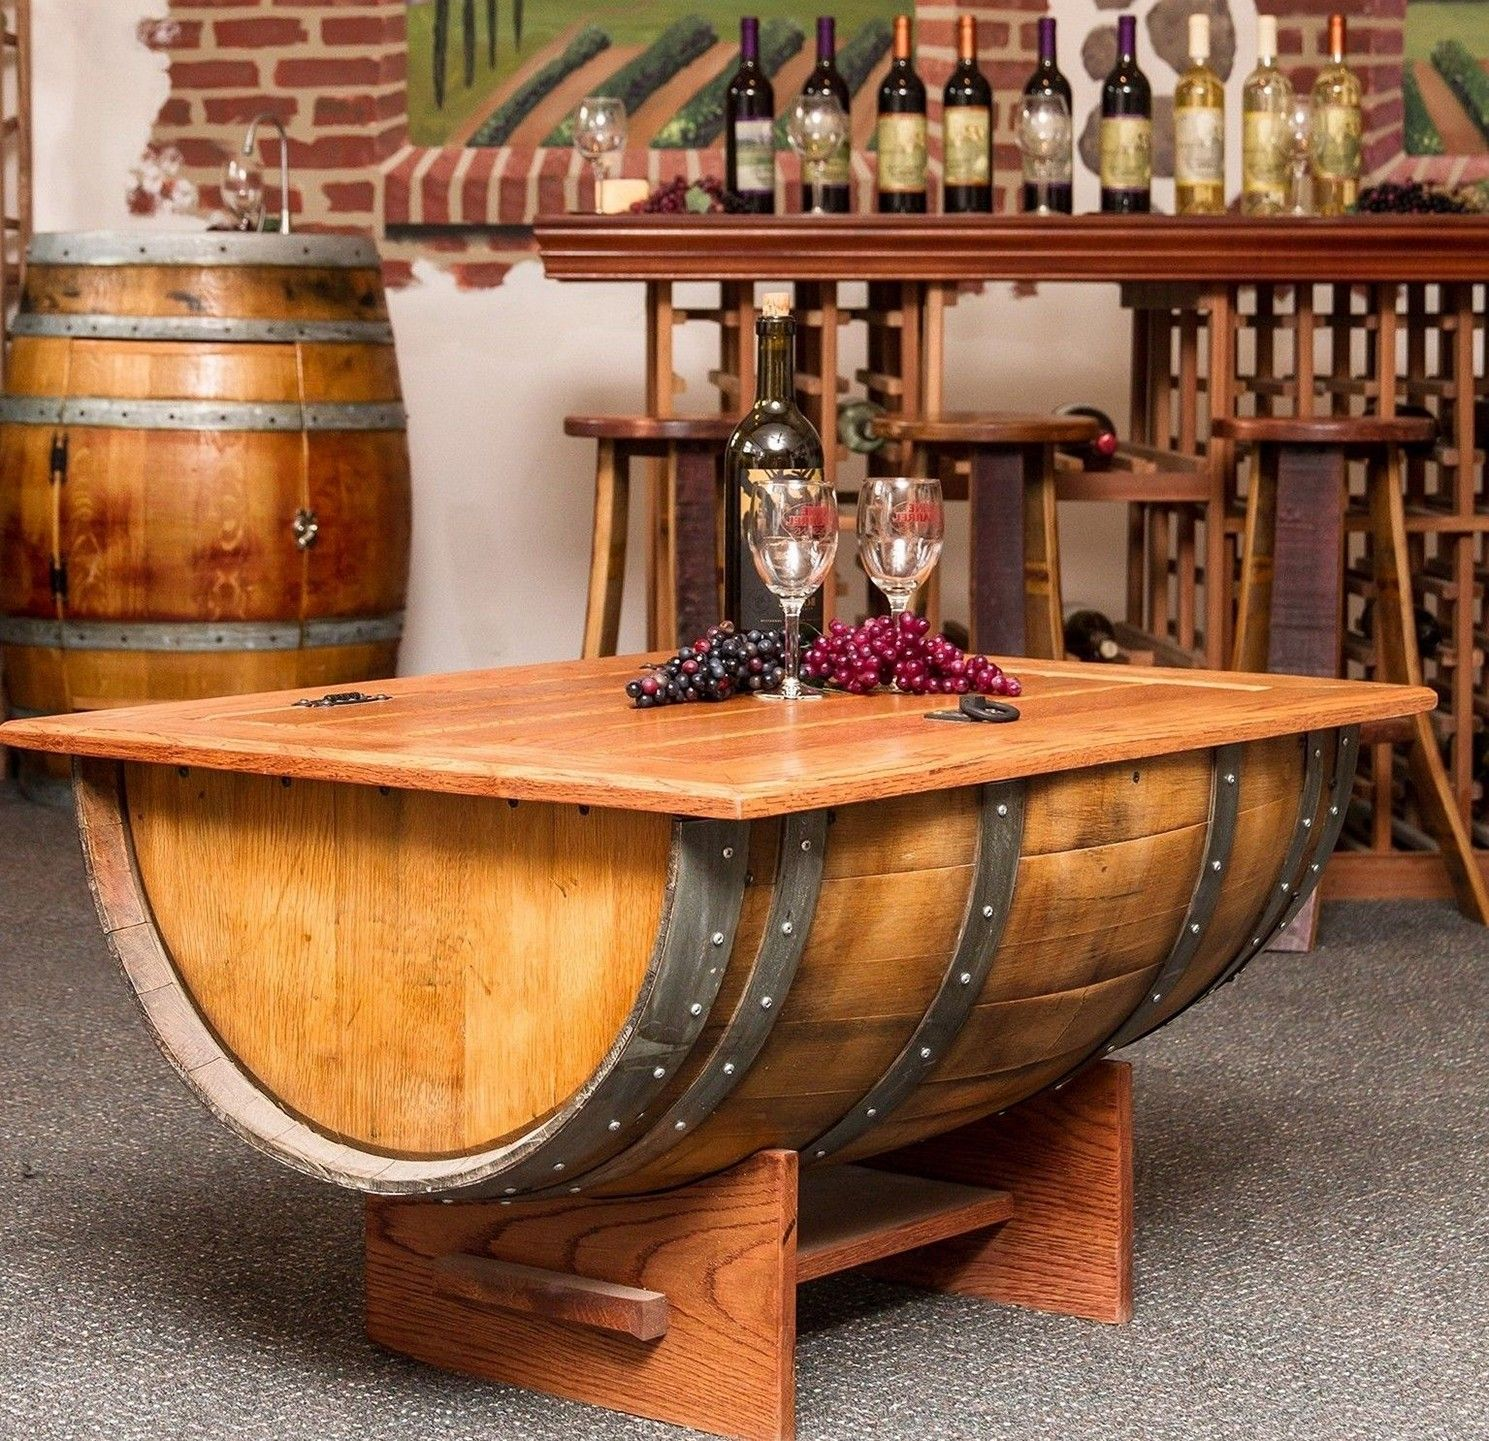 Marvelous Awesome Wine Barrel Coffee Table | Gorgeous DIY Wine Barrel Coffee Table  (with Pictures)